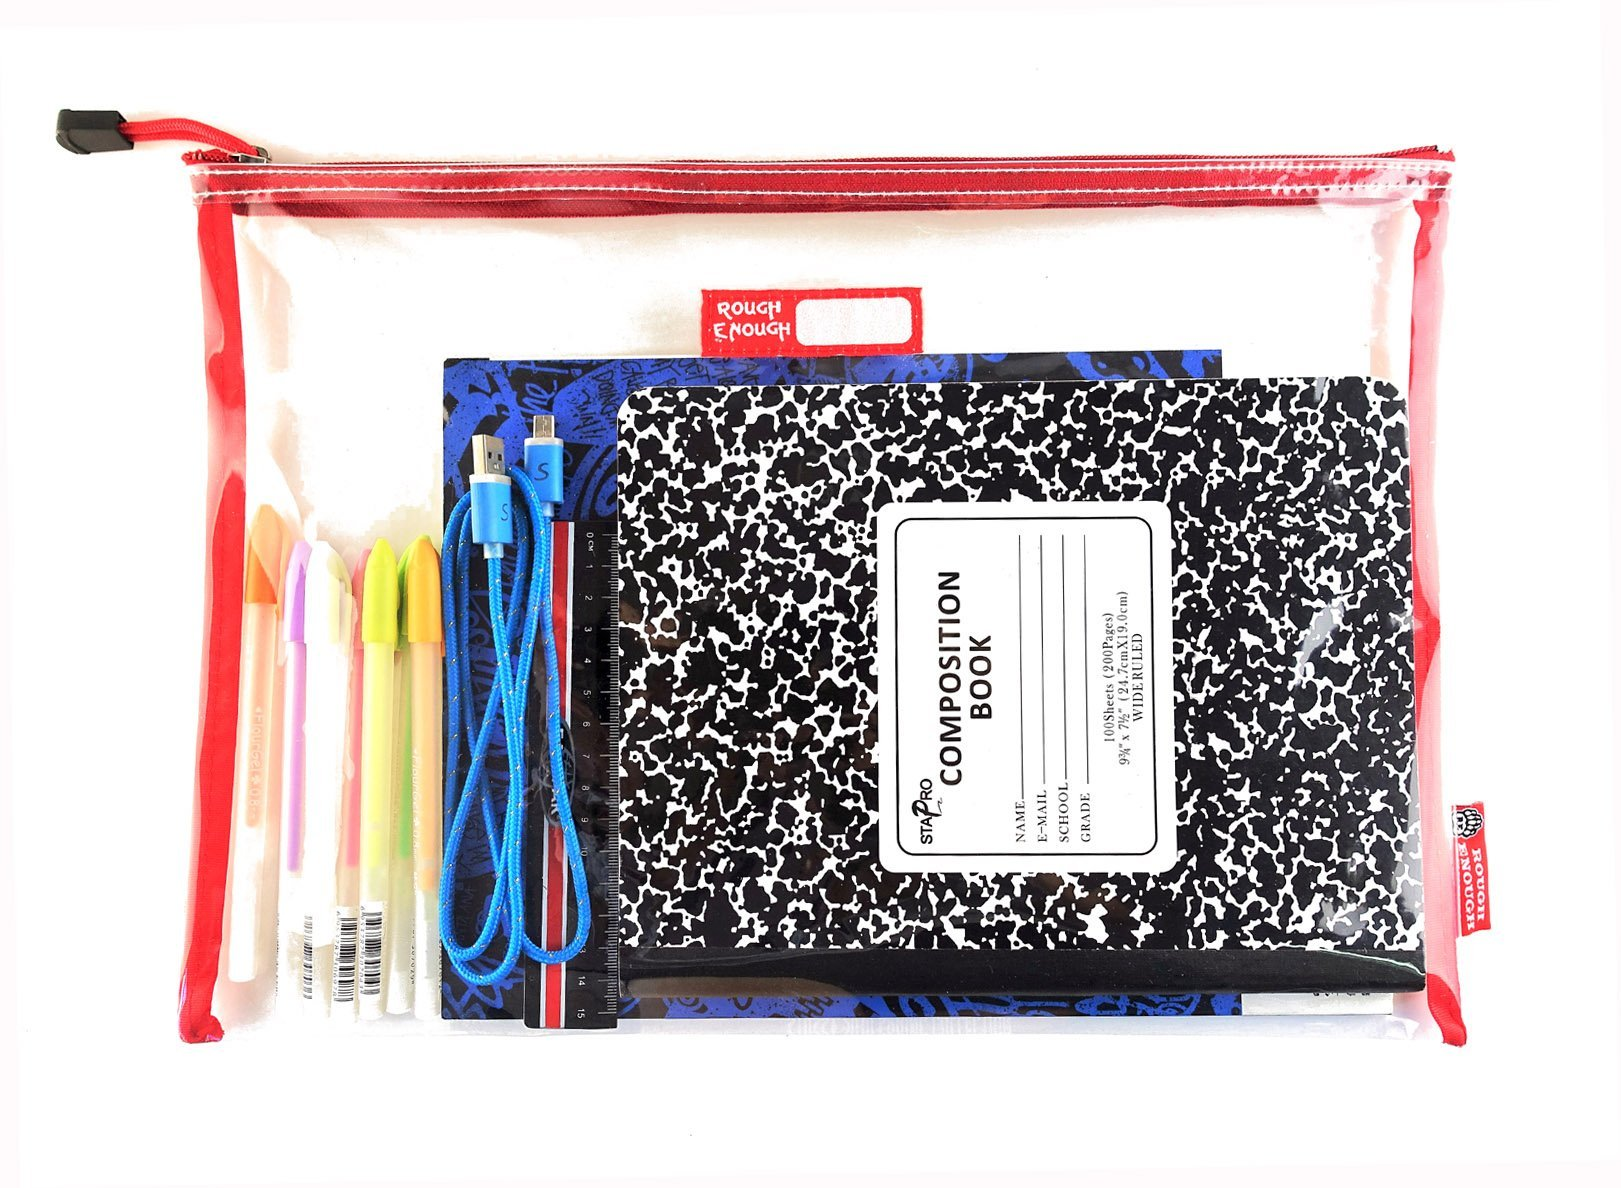 Rough Enough Durable Transparent Clear Classic Multi-Functional Big Document Pouch with Zipper A4 Size Important Storage File Holders Large Folder for Filing Organizer TSA School Business Travel by RE ROUGH ENOUGH (Image #5)